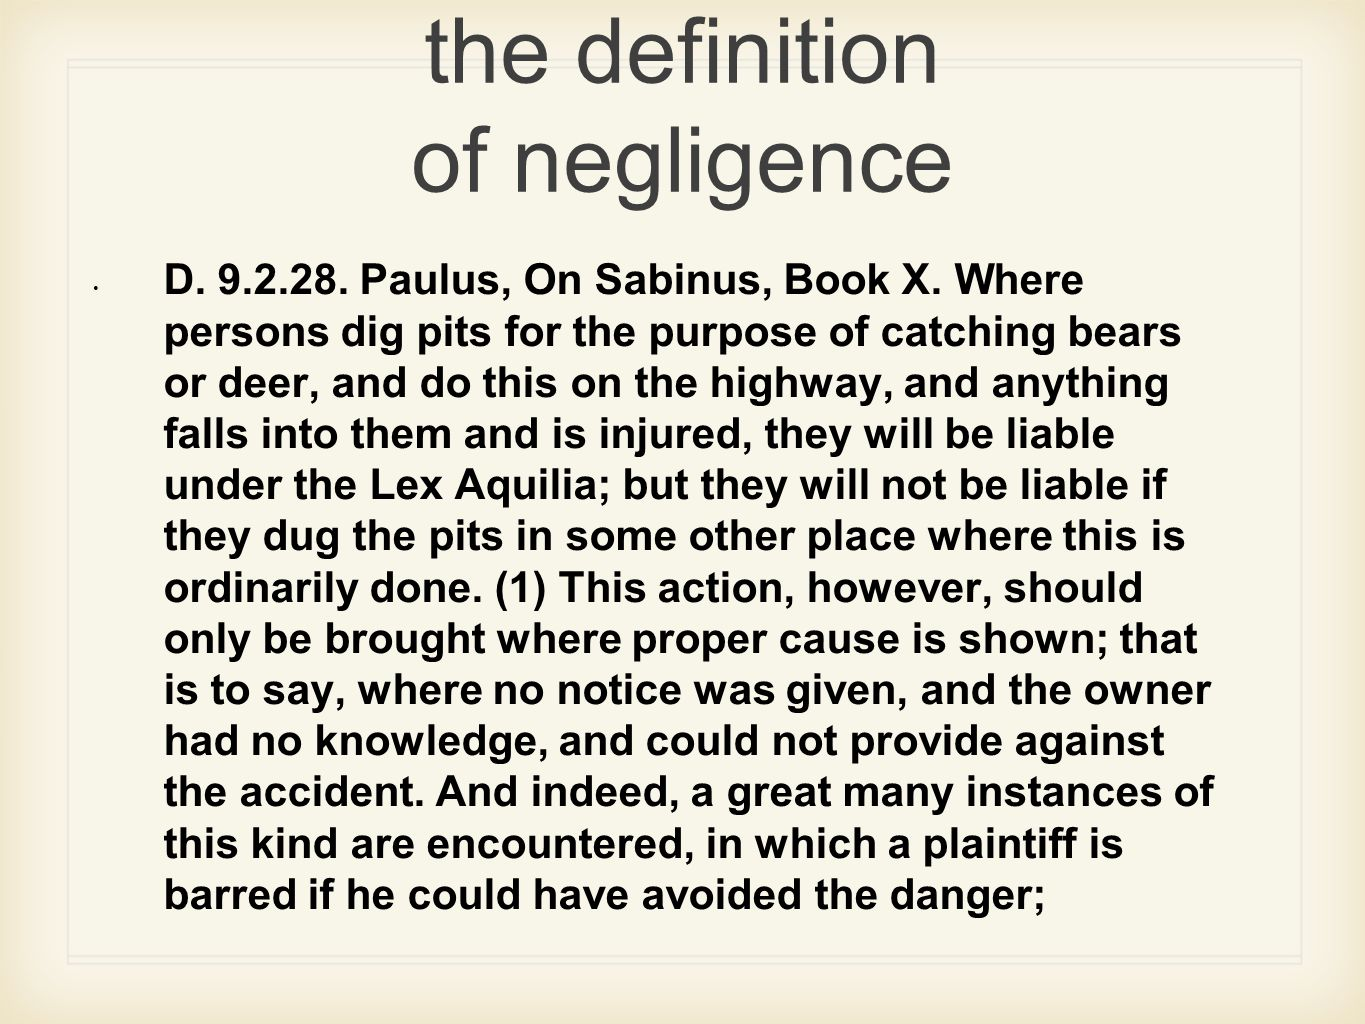 the definition of negligence D. 9.2.28. Paulus, On Sabinus, Book X.